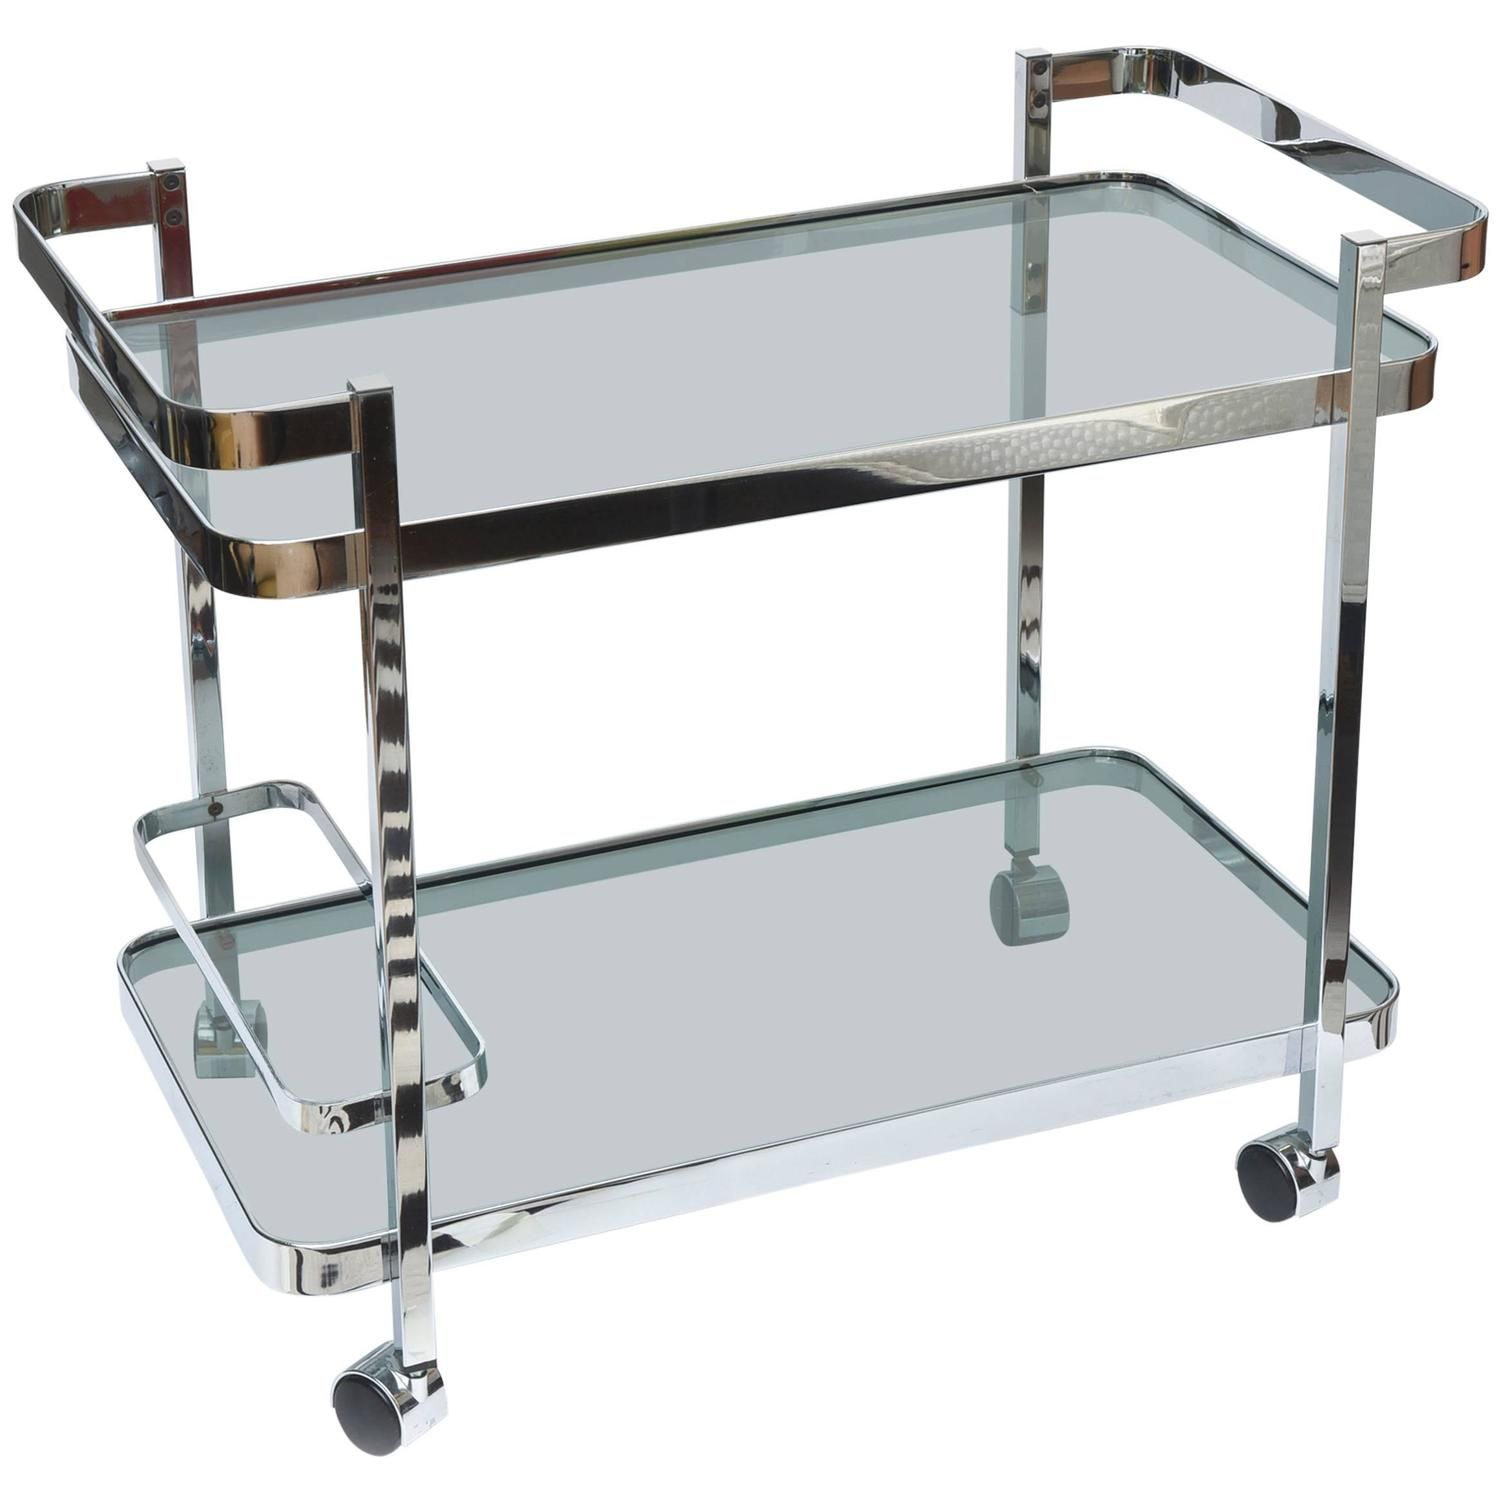 Polished Chrome And Smoky Black Glass Two Tiered Bar/ Serving Cart | From A